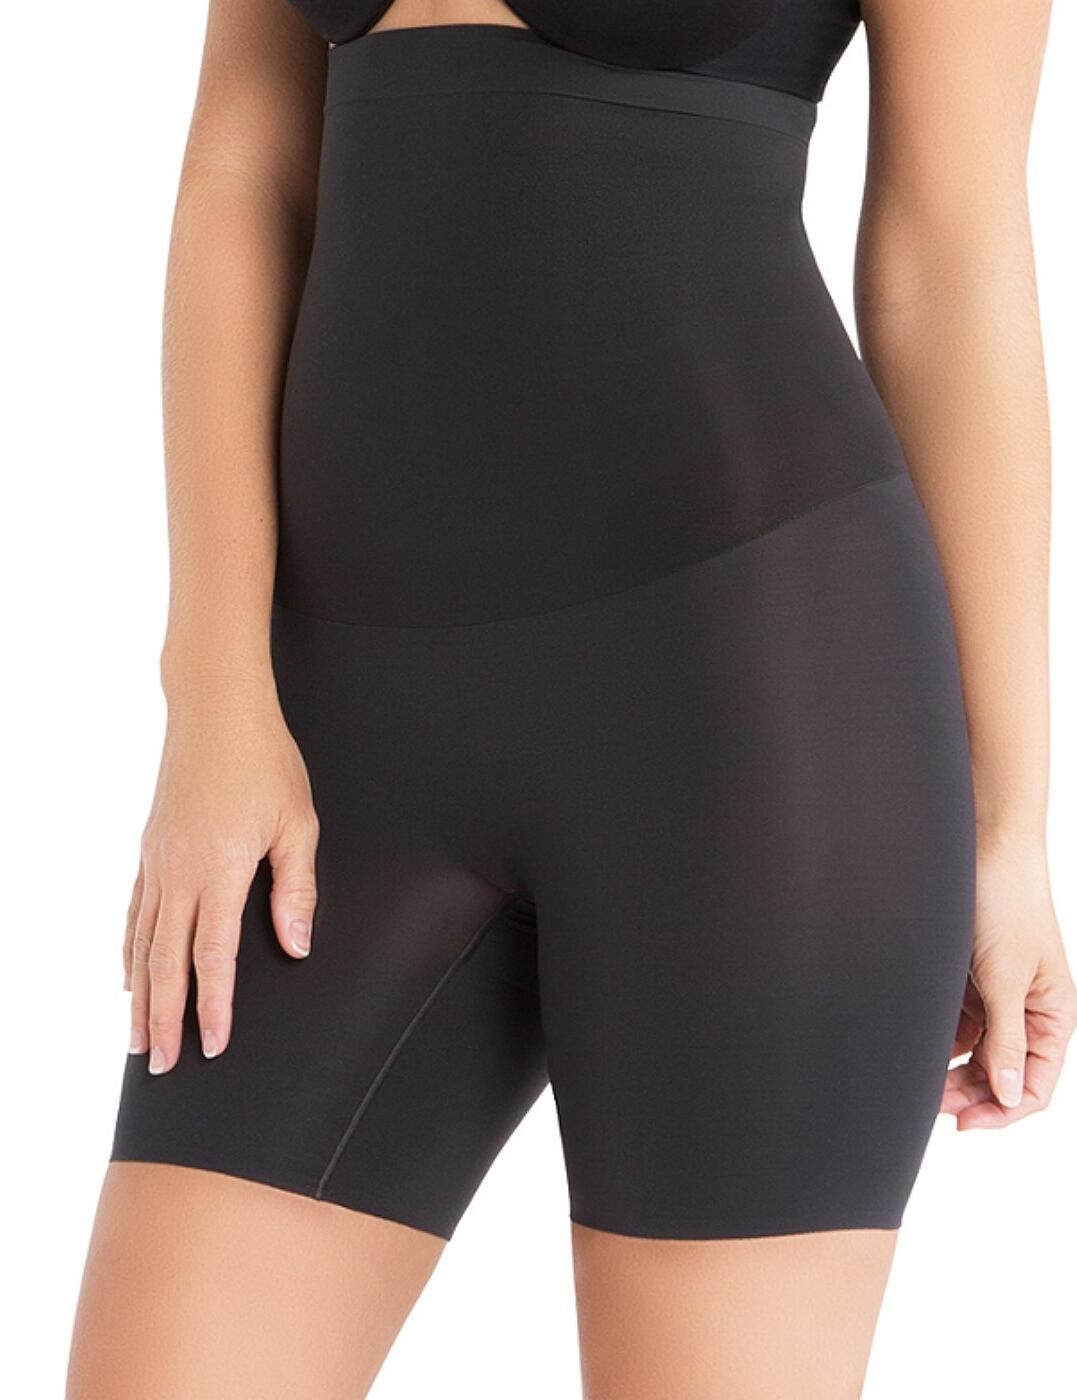 Spanx Shape My Day High-Waist Mid Thigh Shaping Brief